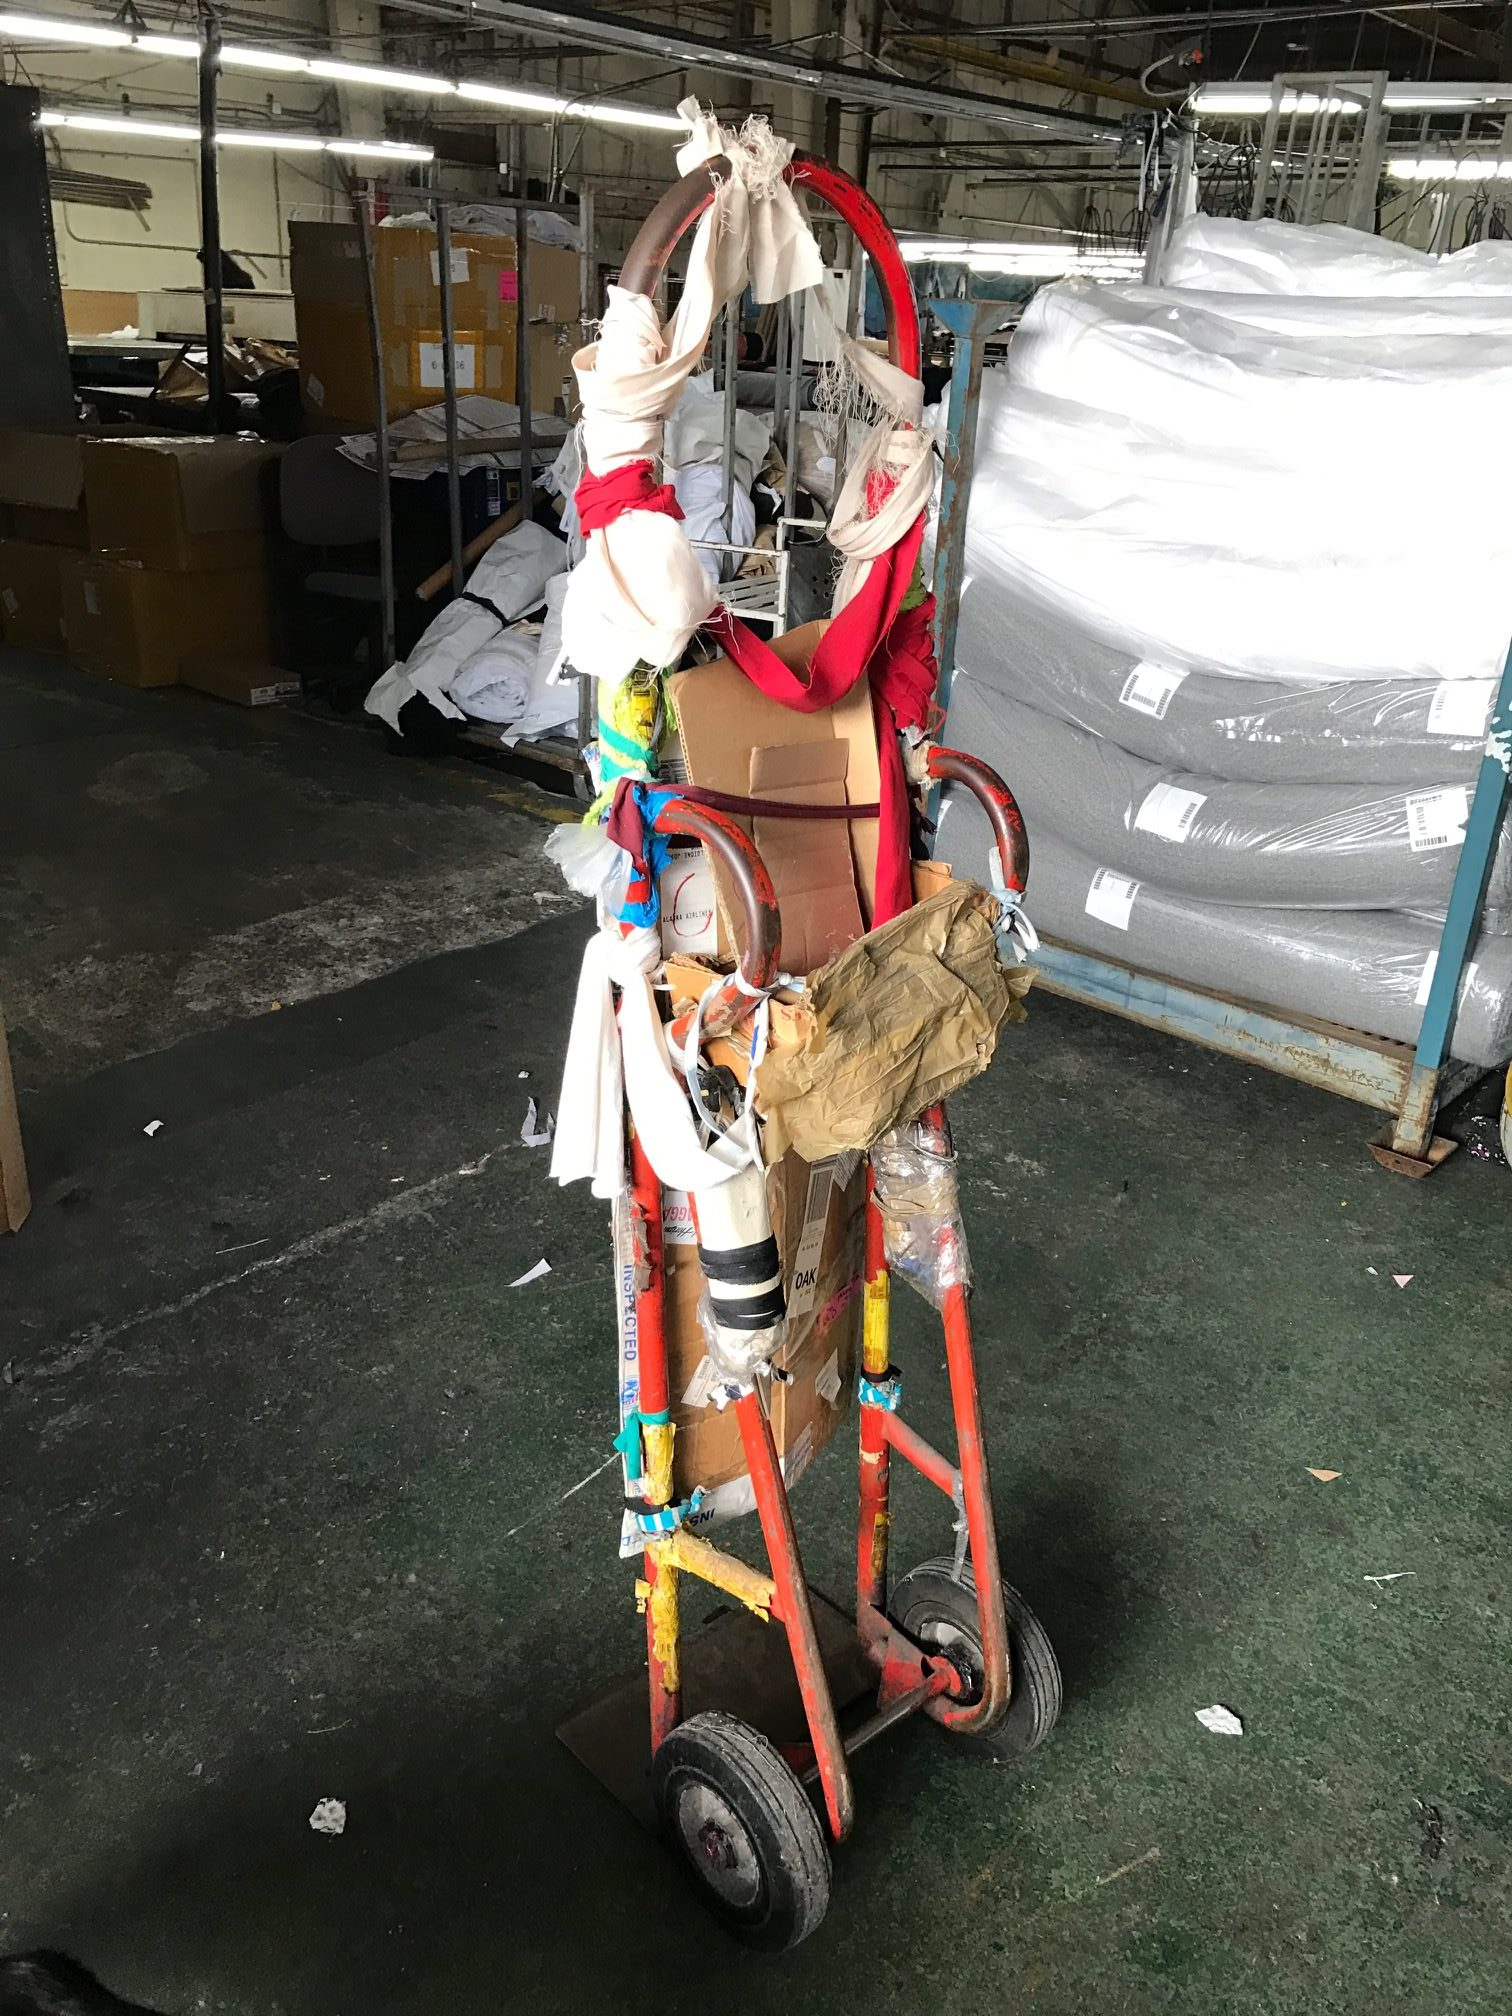 Factory dolly decorated with scraps